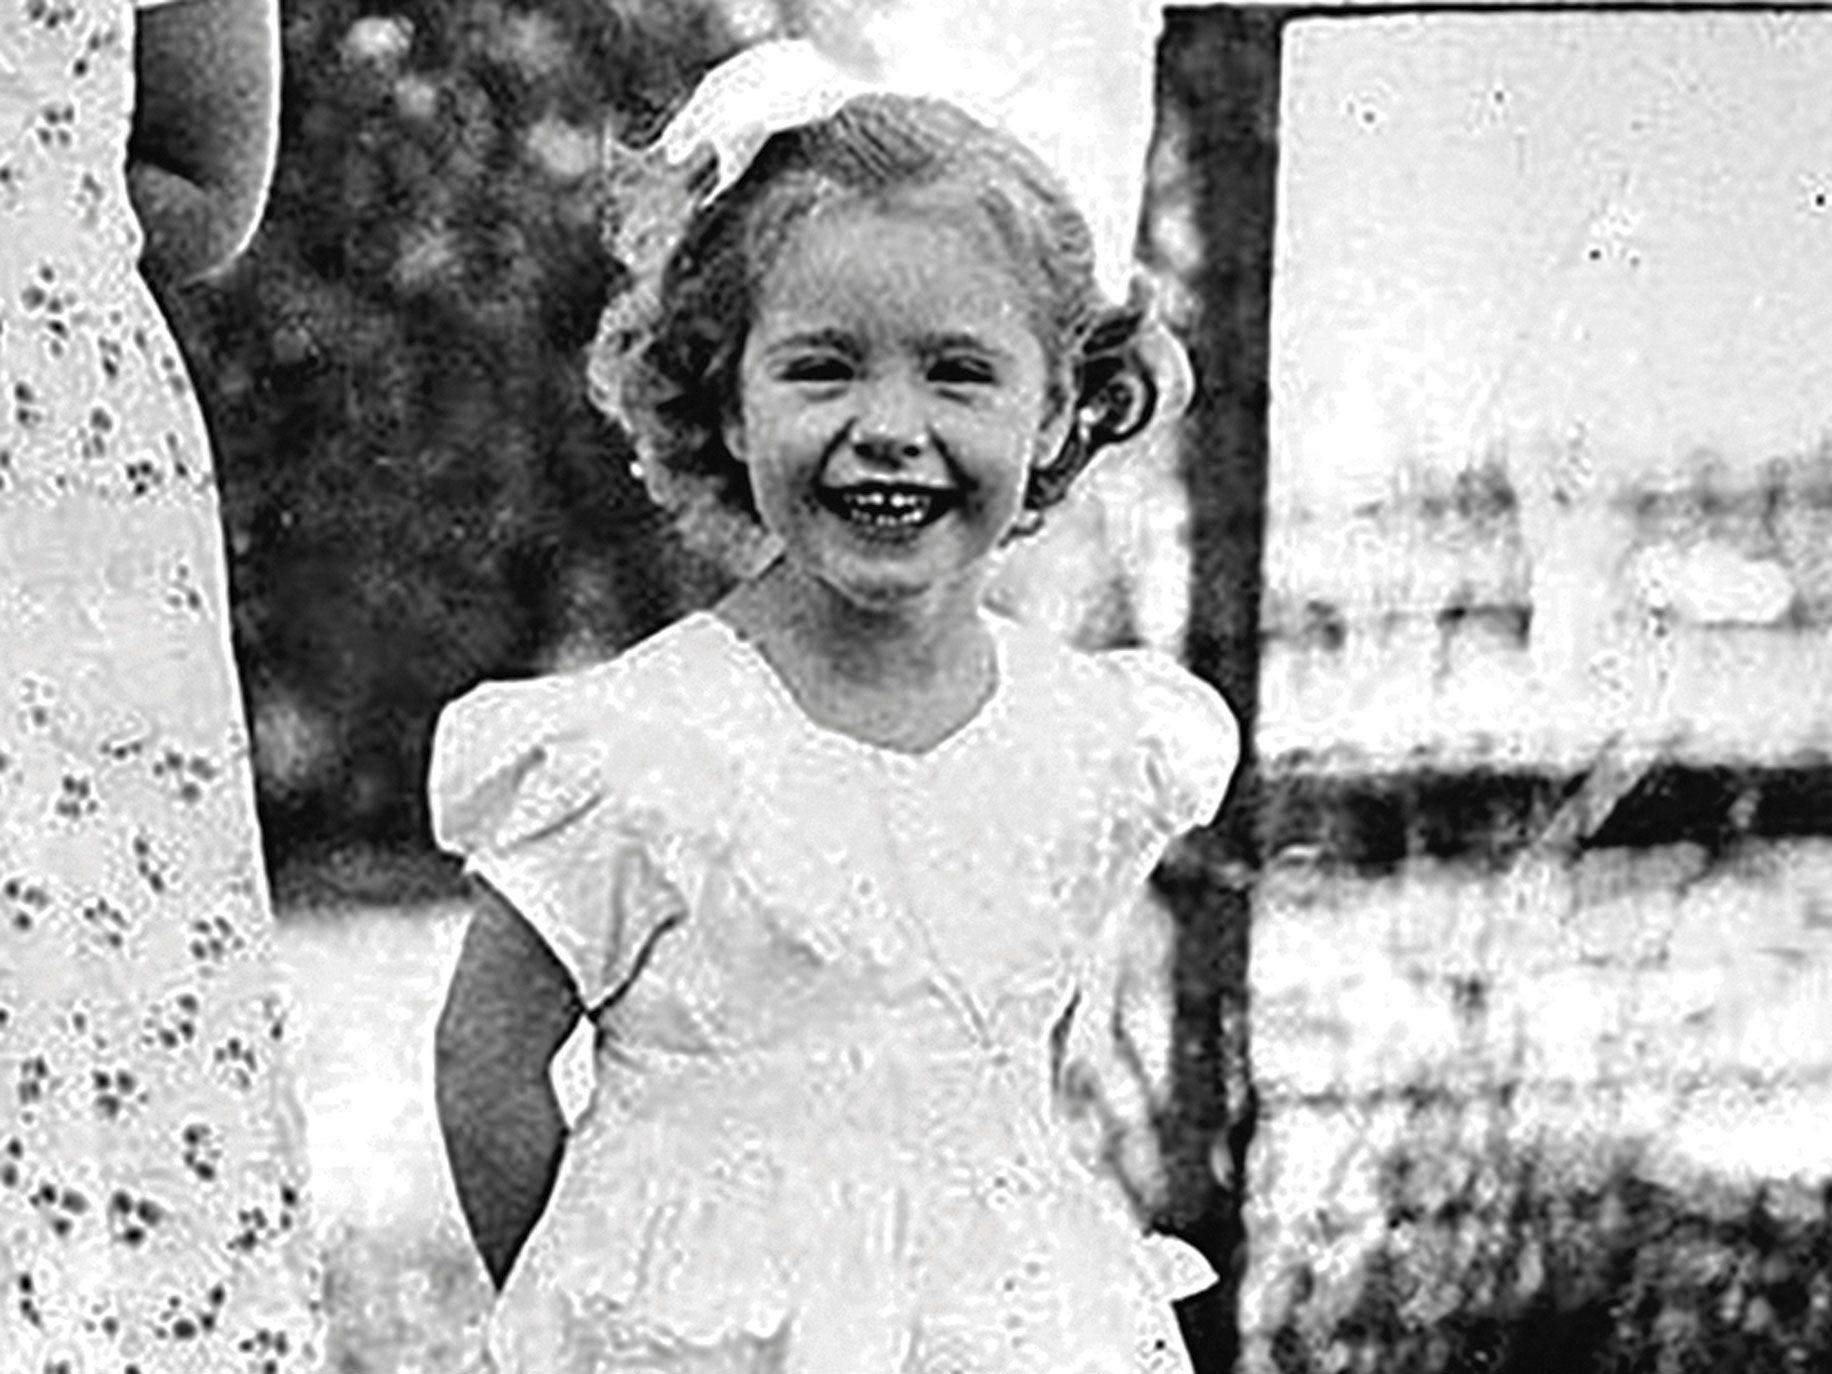 Three-year-old Kathy Fiscus, who fell down a well in San Marino.